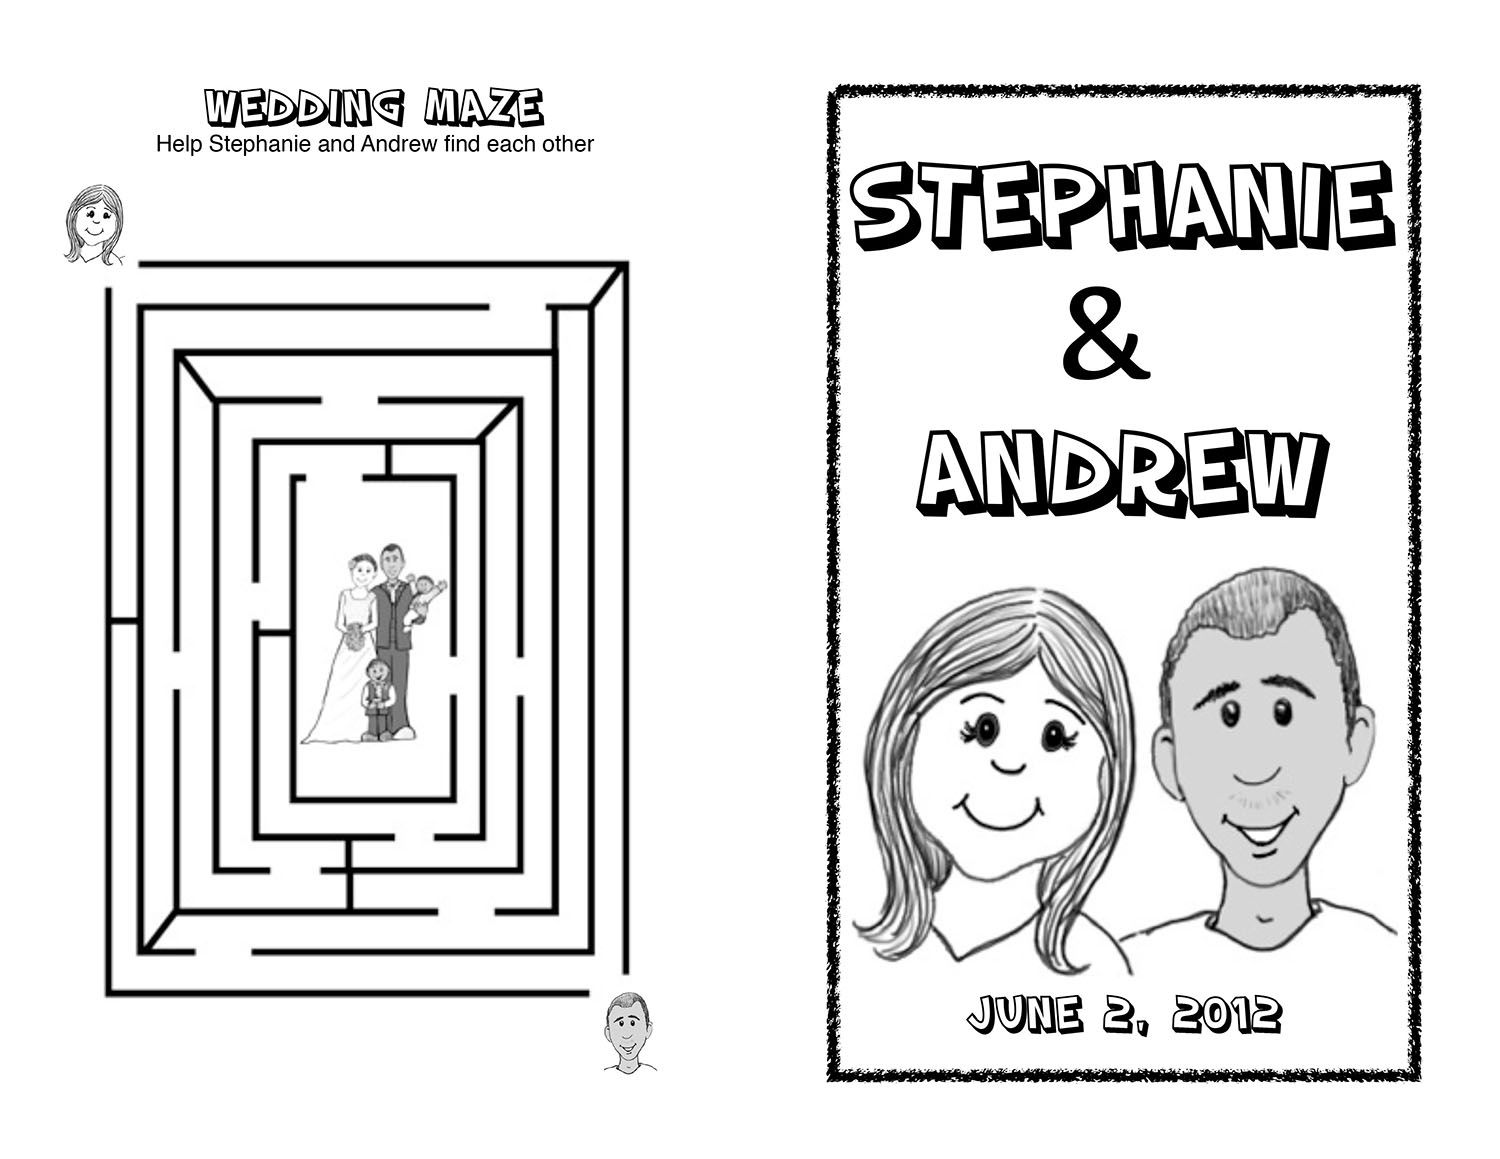 wedding maze colouring kb credited wedding coloring book - Wedding Coloring Books For Children